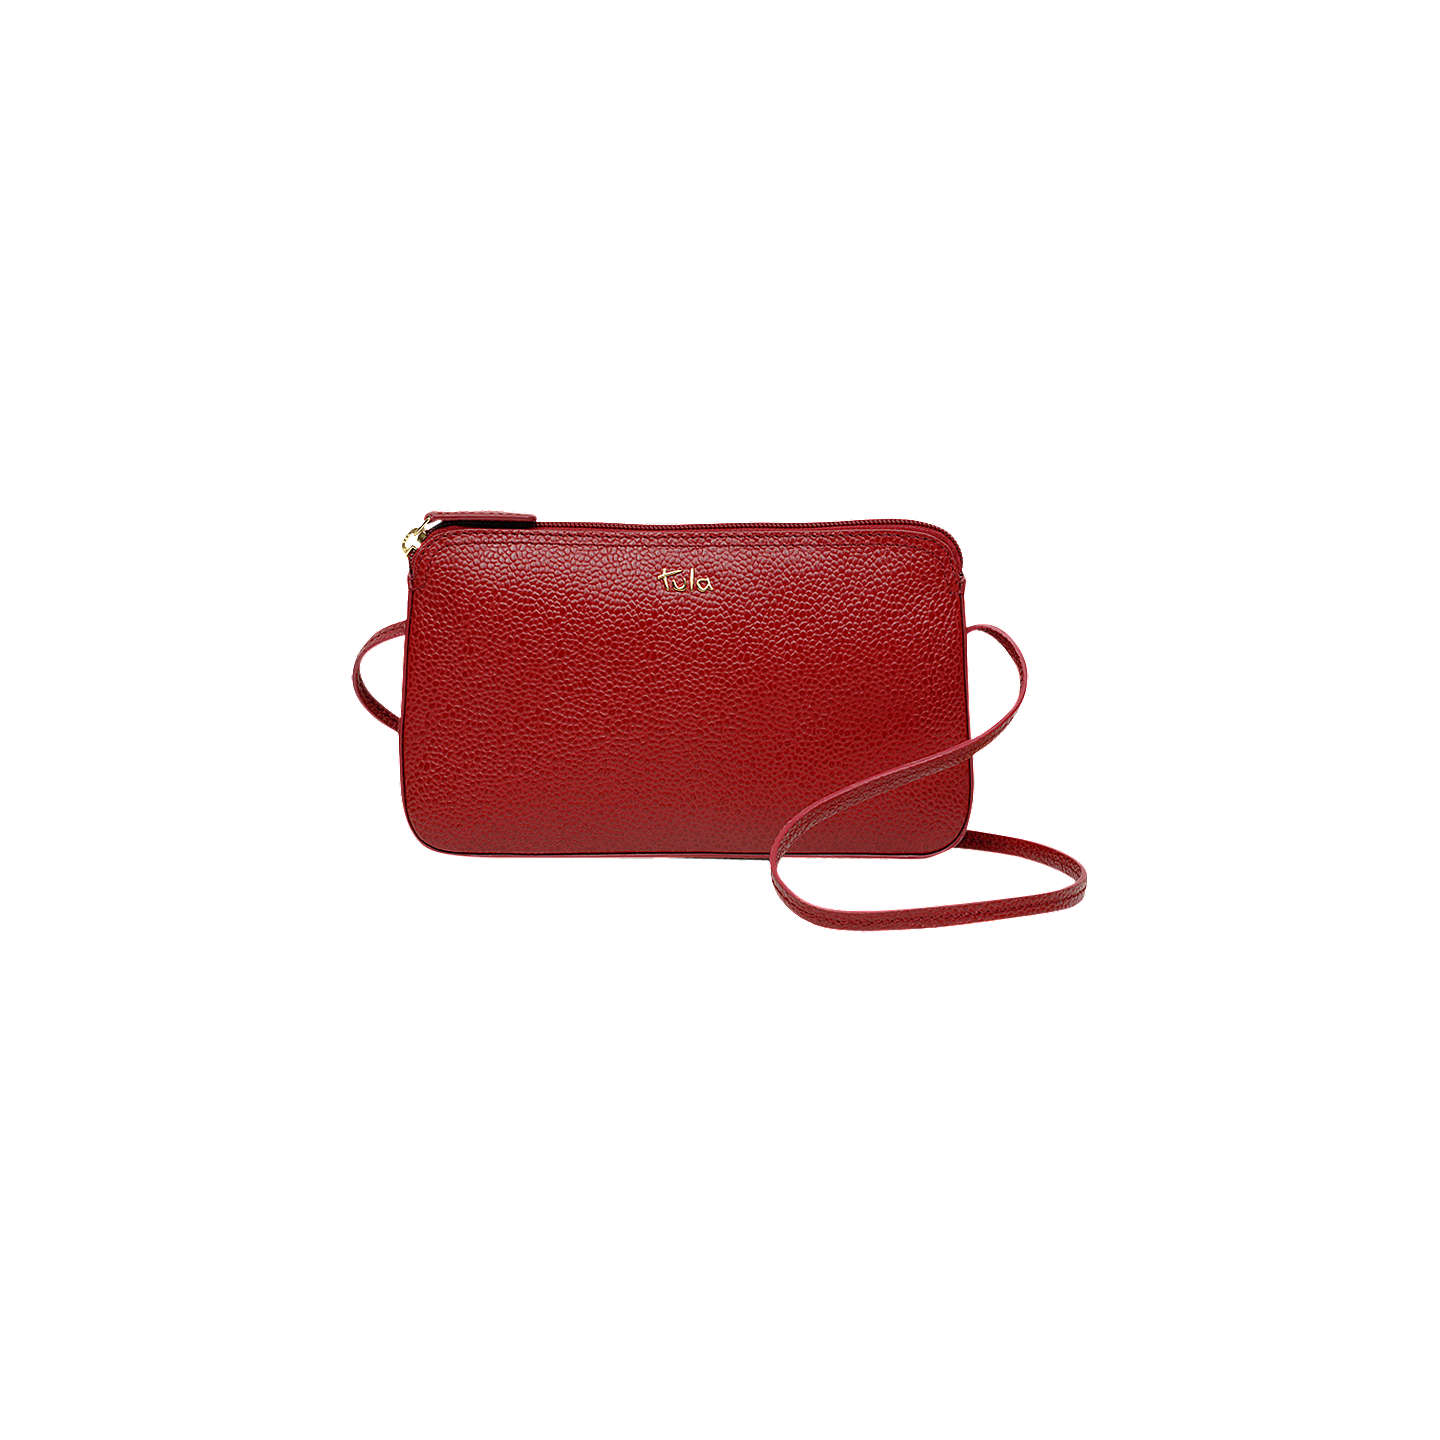 BuyTula Originals Pebbled Leather Cross Body Zip Bag, Scarlet Online at johnlewis.com